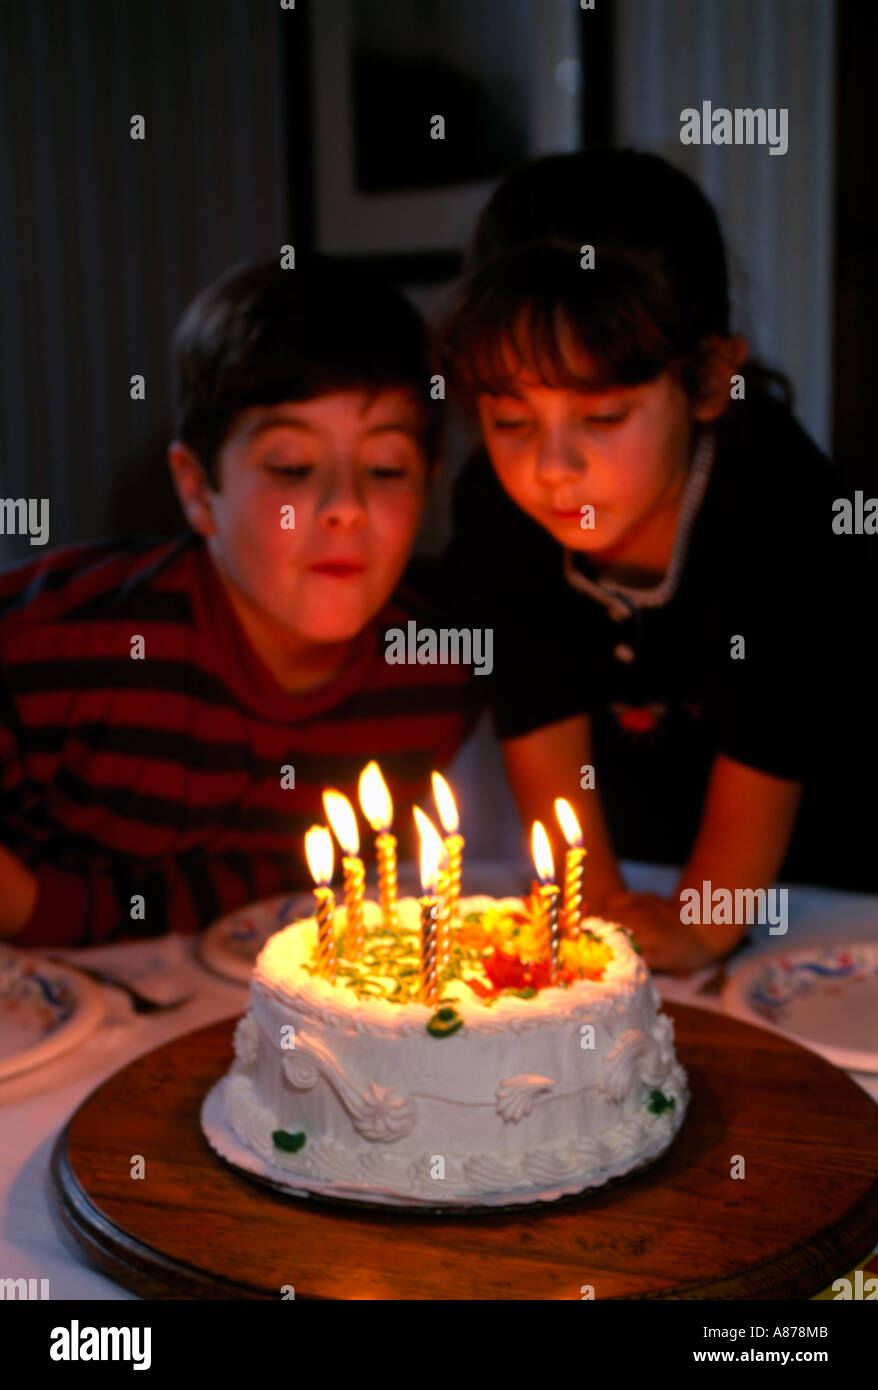 Brother And Sister Blowing Out Candles On Birthday Cake Stock Photo